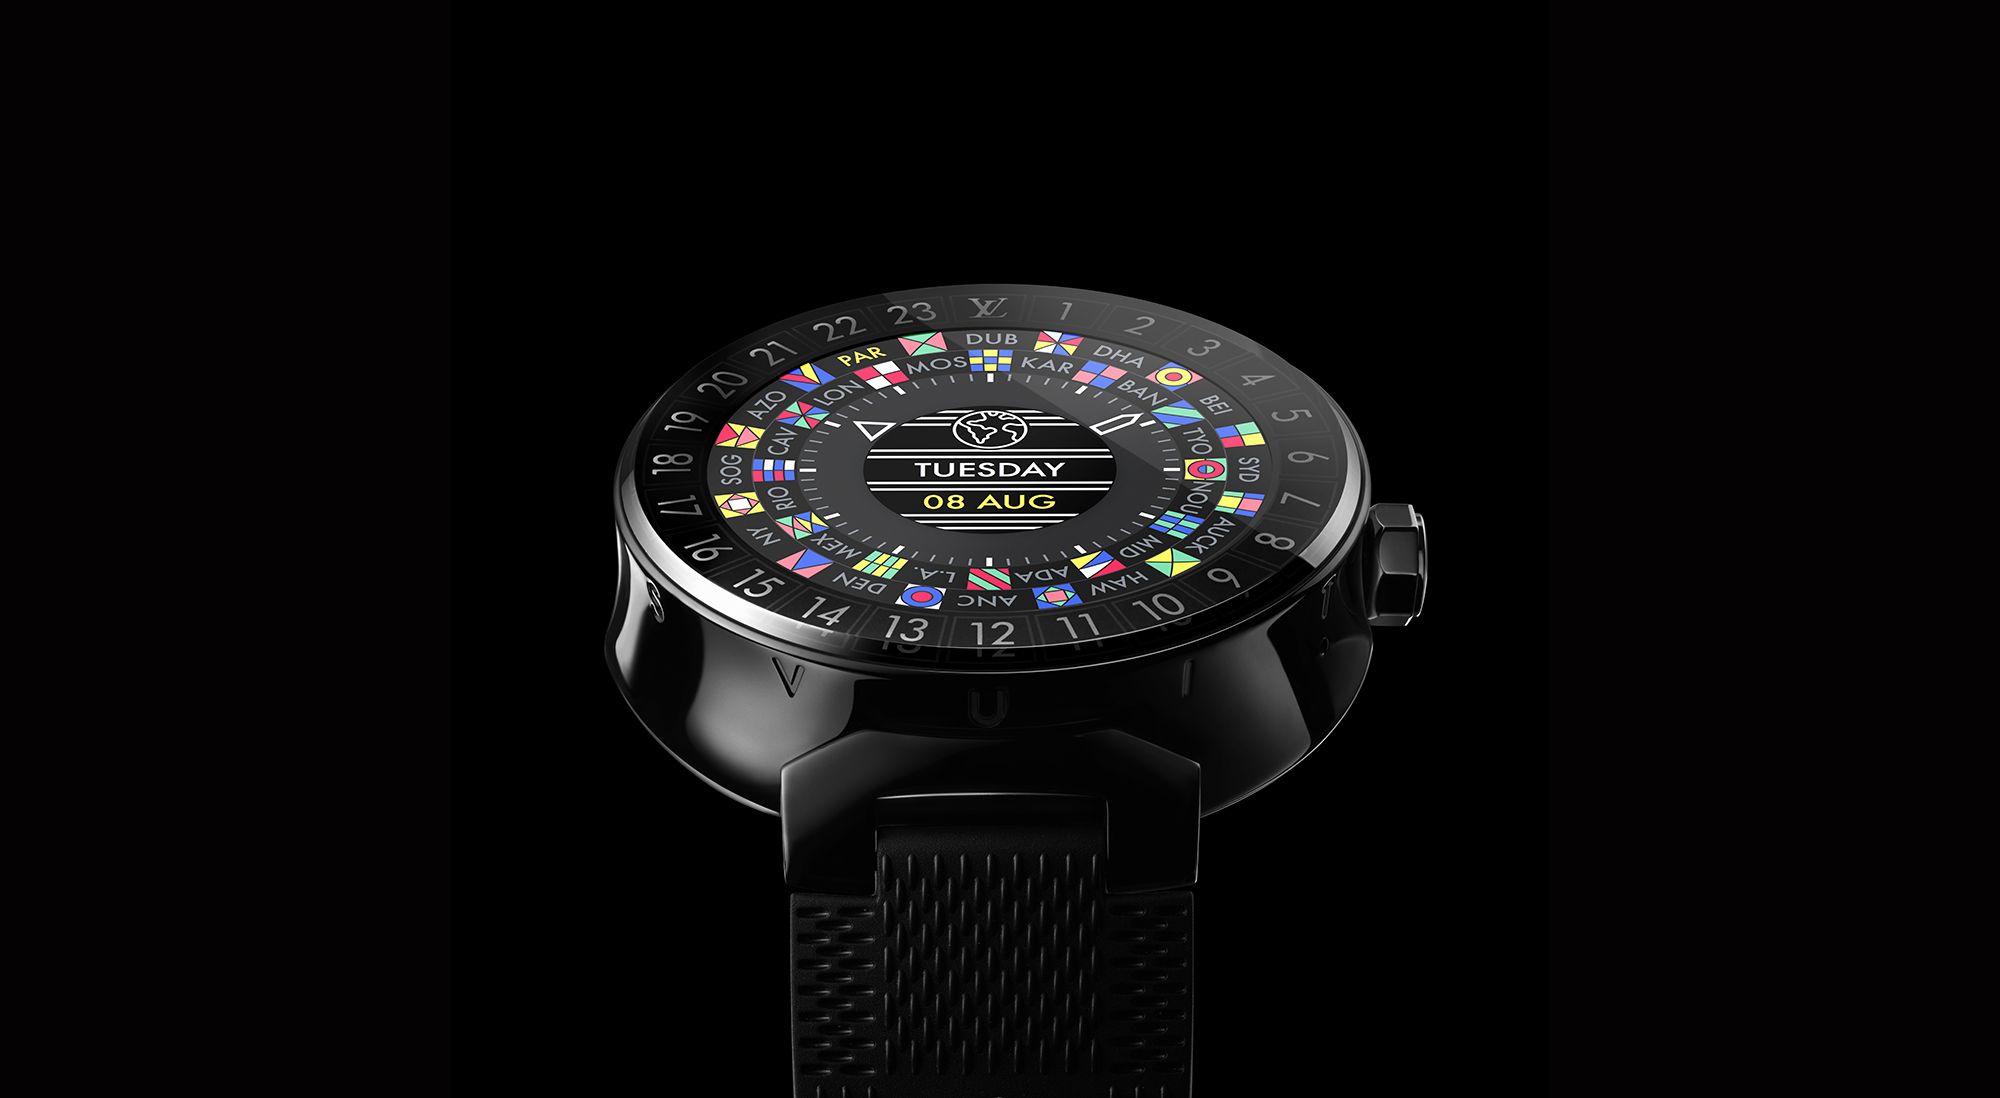 Louis Vuitton Tambour Horizon is the Maison's first ever smartwatch